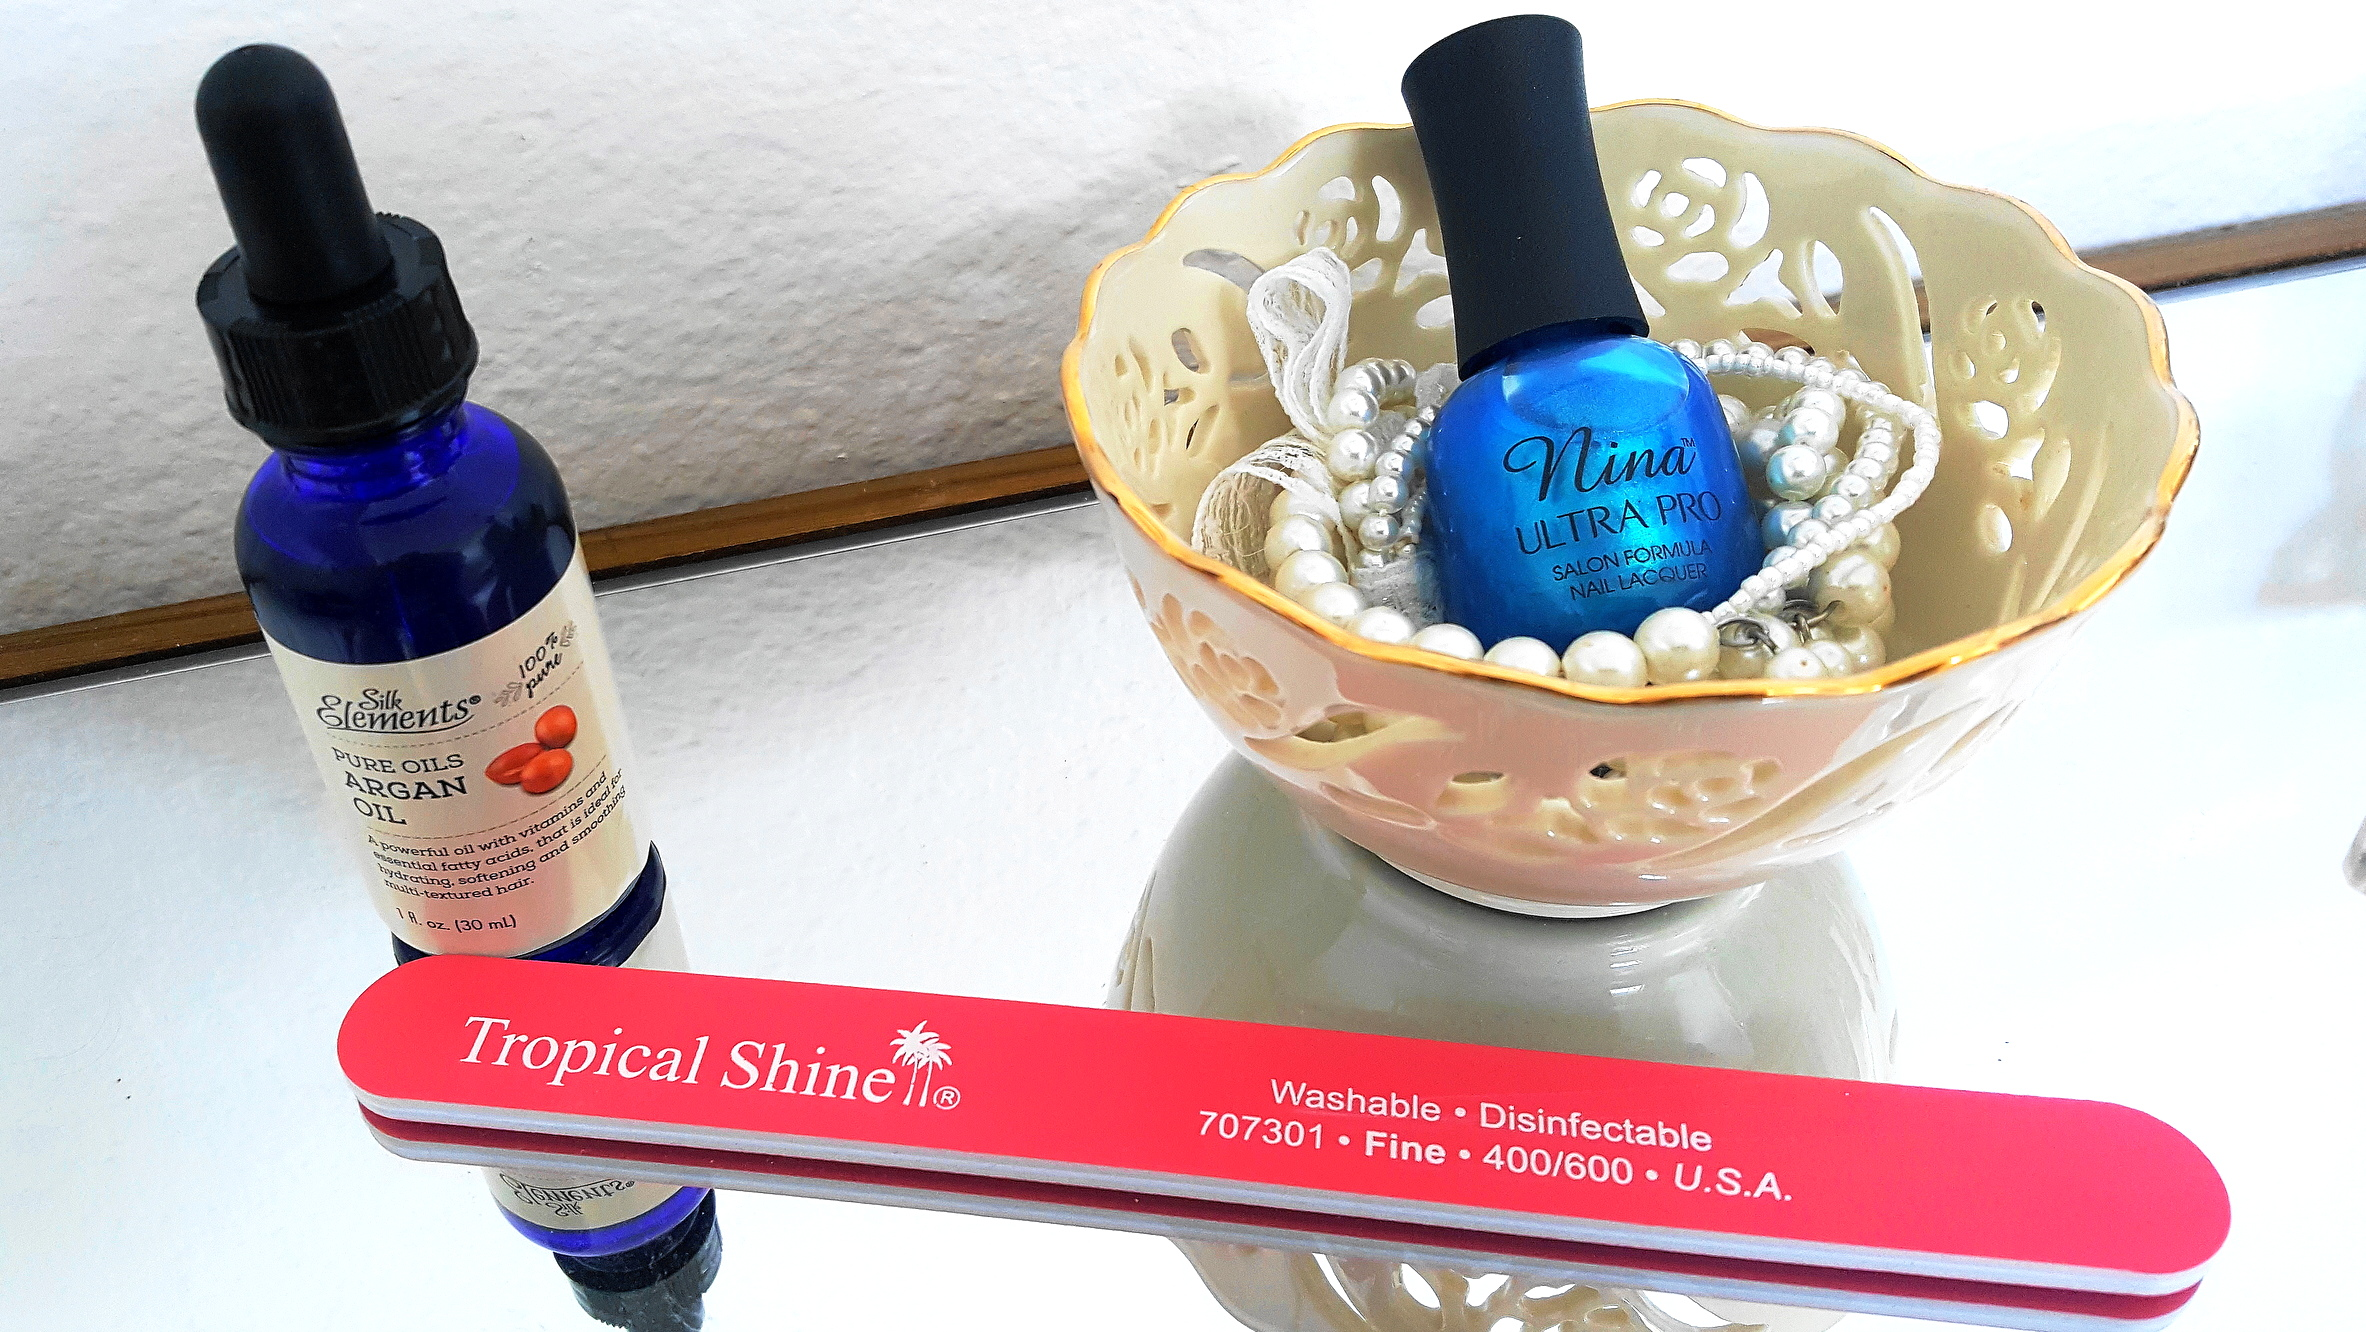 Silk Elements Pure Oils Argan Oil, Tropical Shine nail file & Nina Ultrea Pro nail lacquer - Caribbean Blue